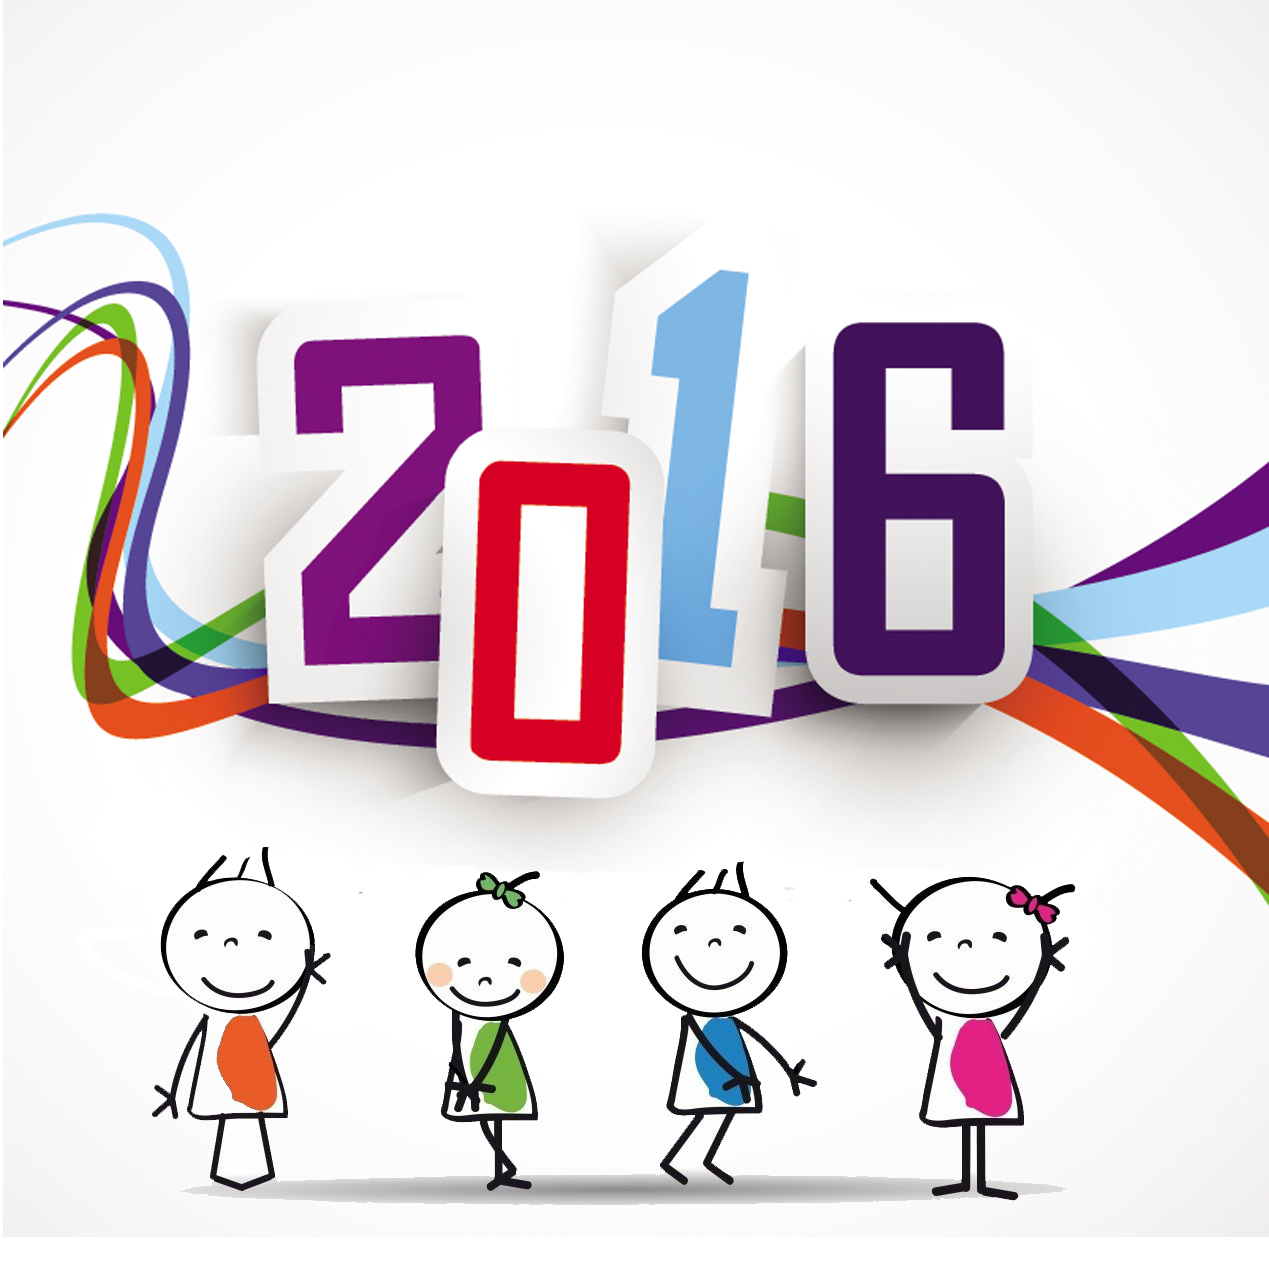 2016 clipart free.